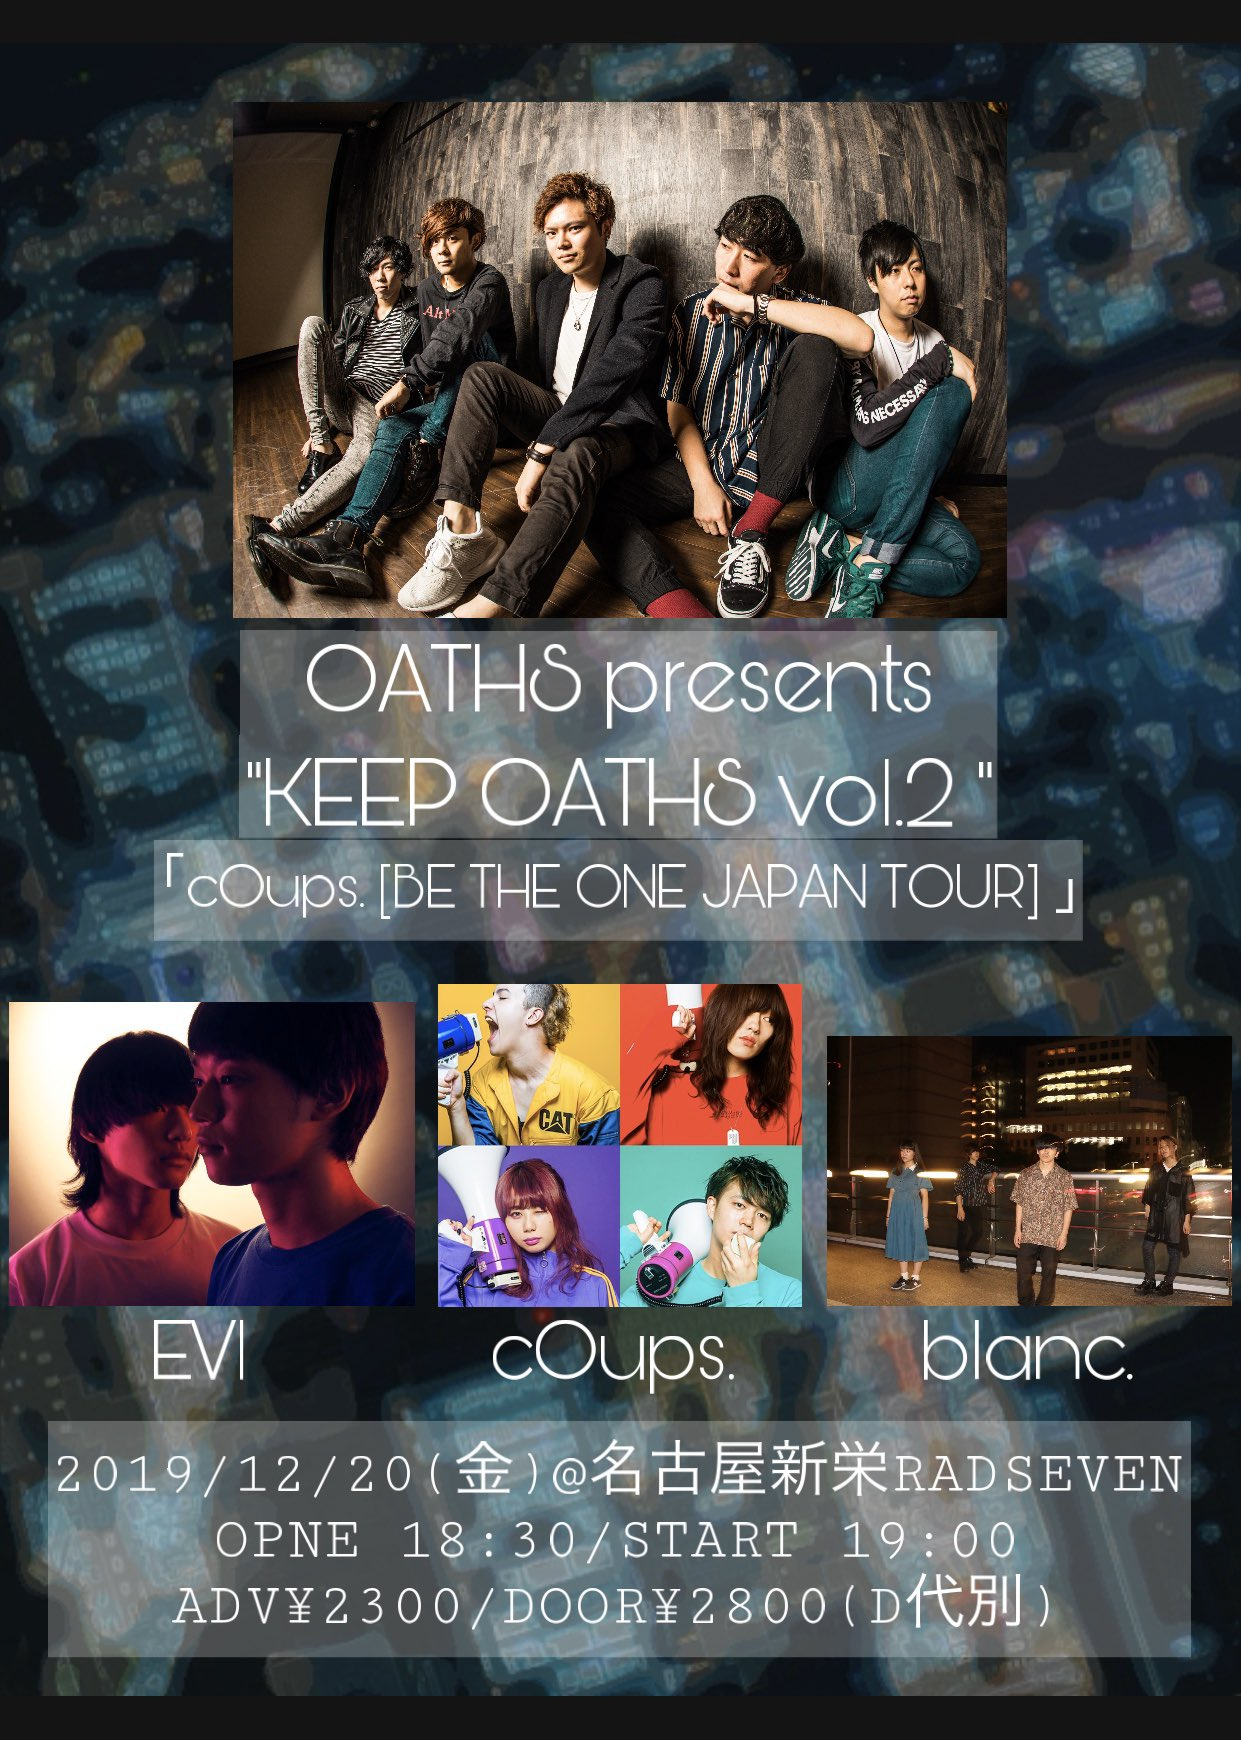 OATHS presents KEEP OATHS vol.2 「cOups. [BE THE ONE JAPAN TOUR] 」